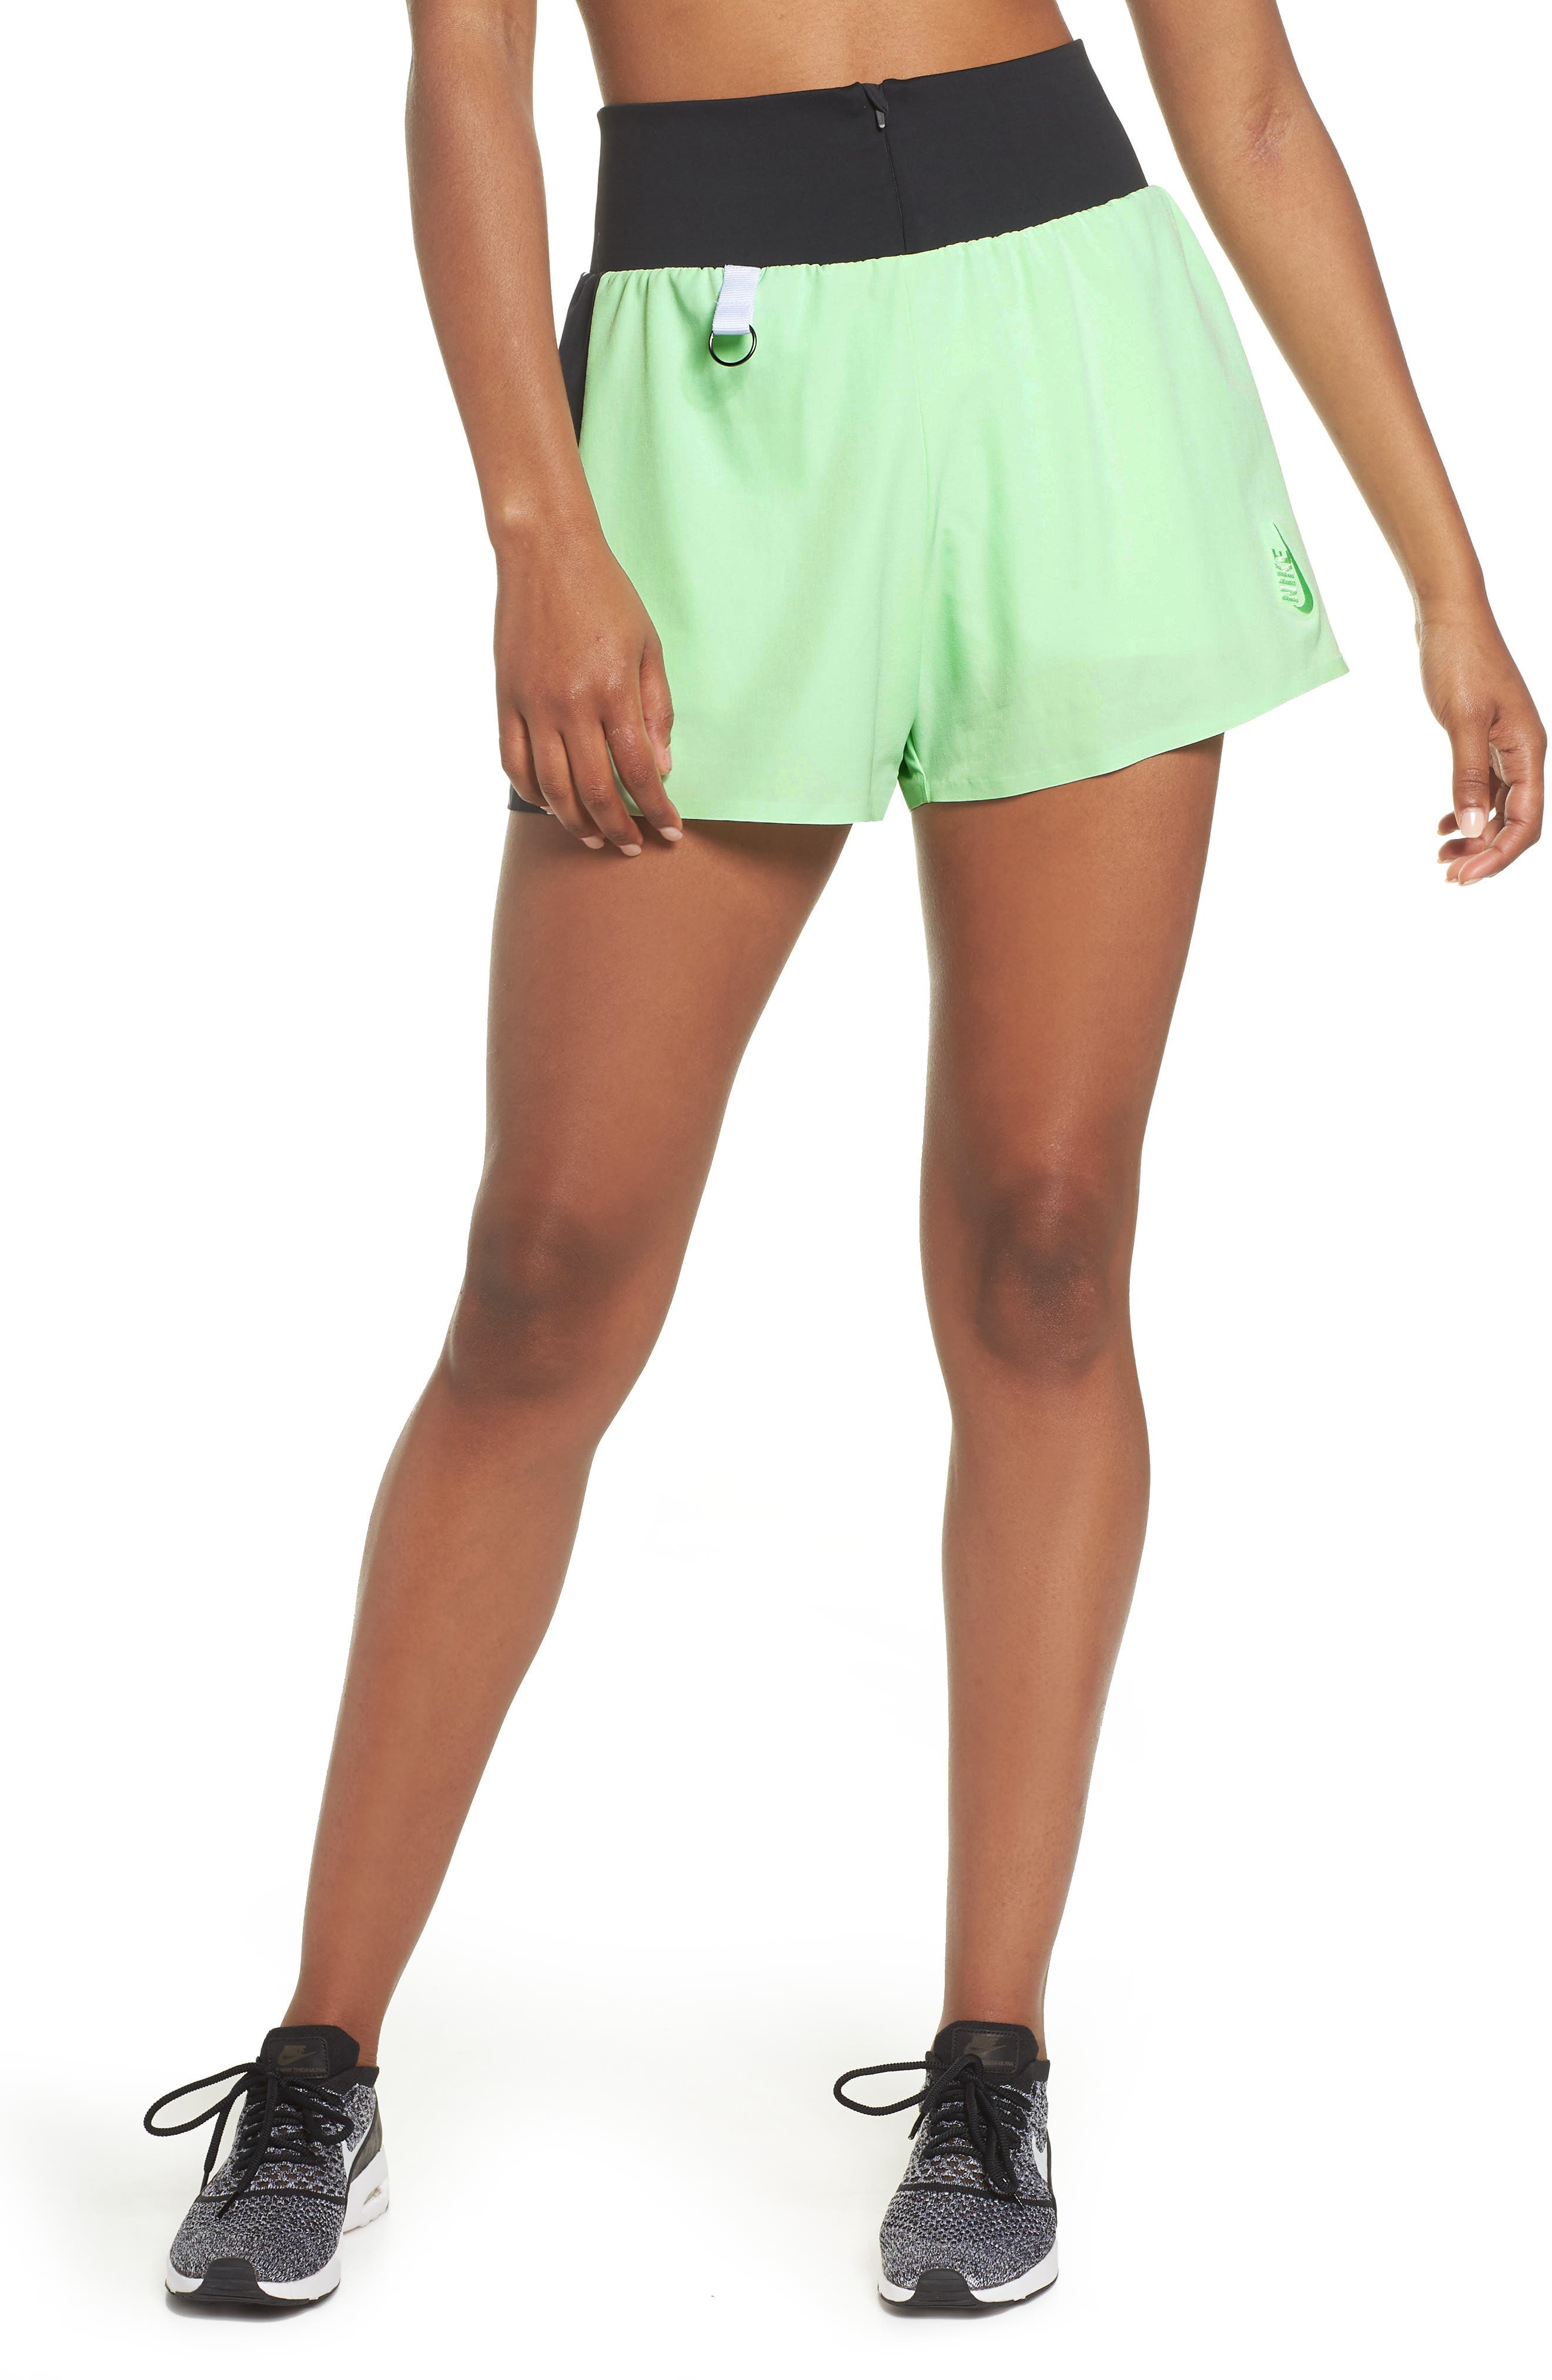 NRG Women's Dri-FIT Running Shorts,                         Main,                         color, 326